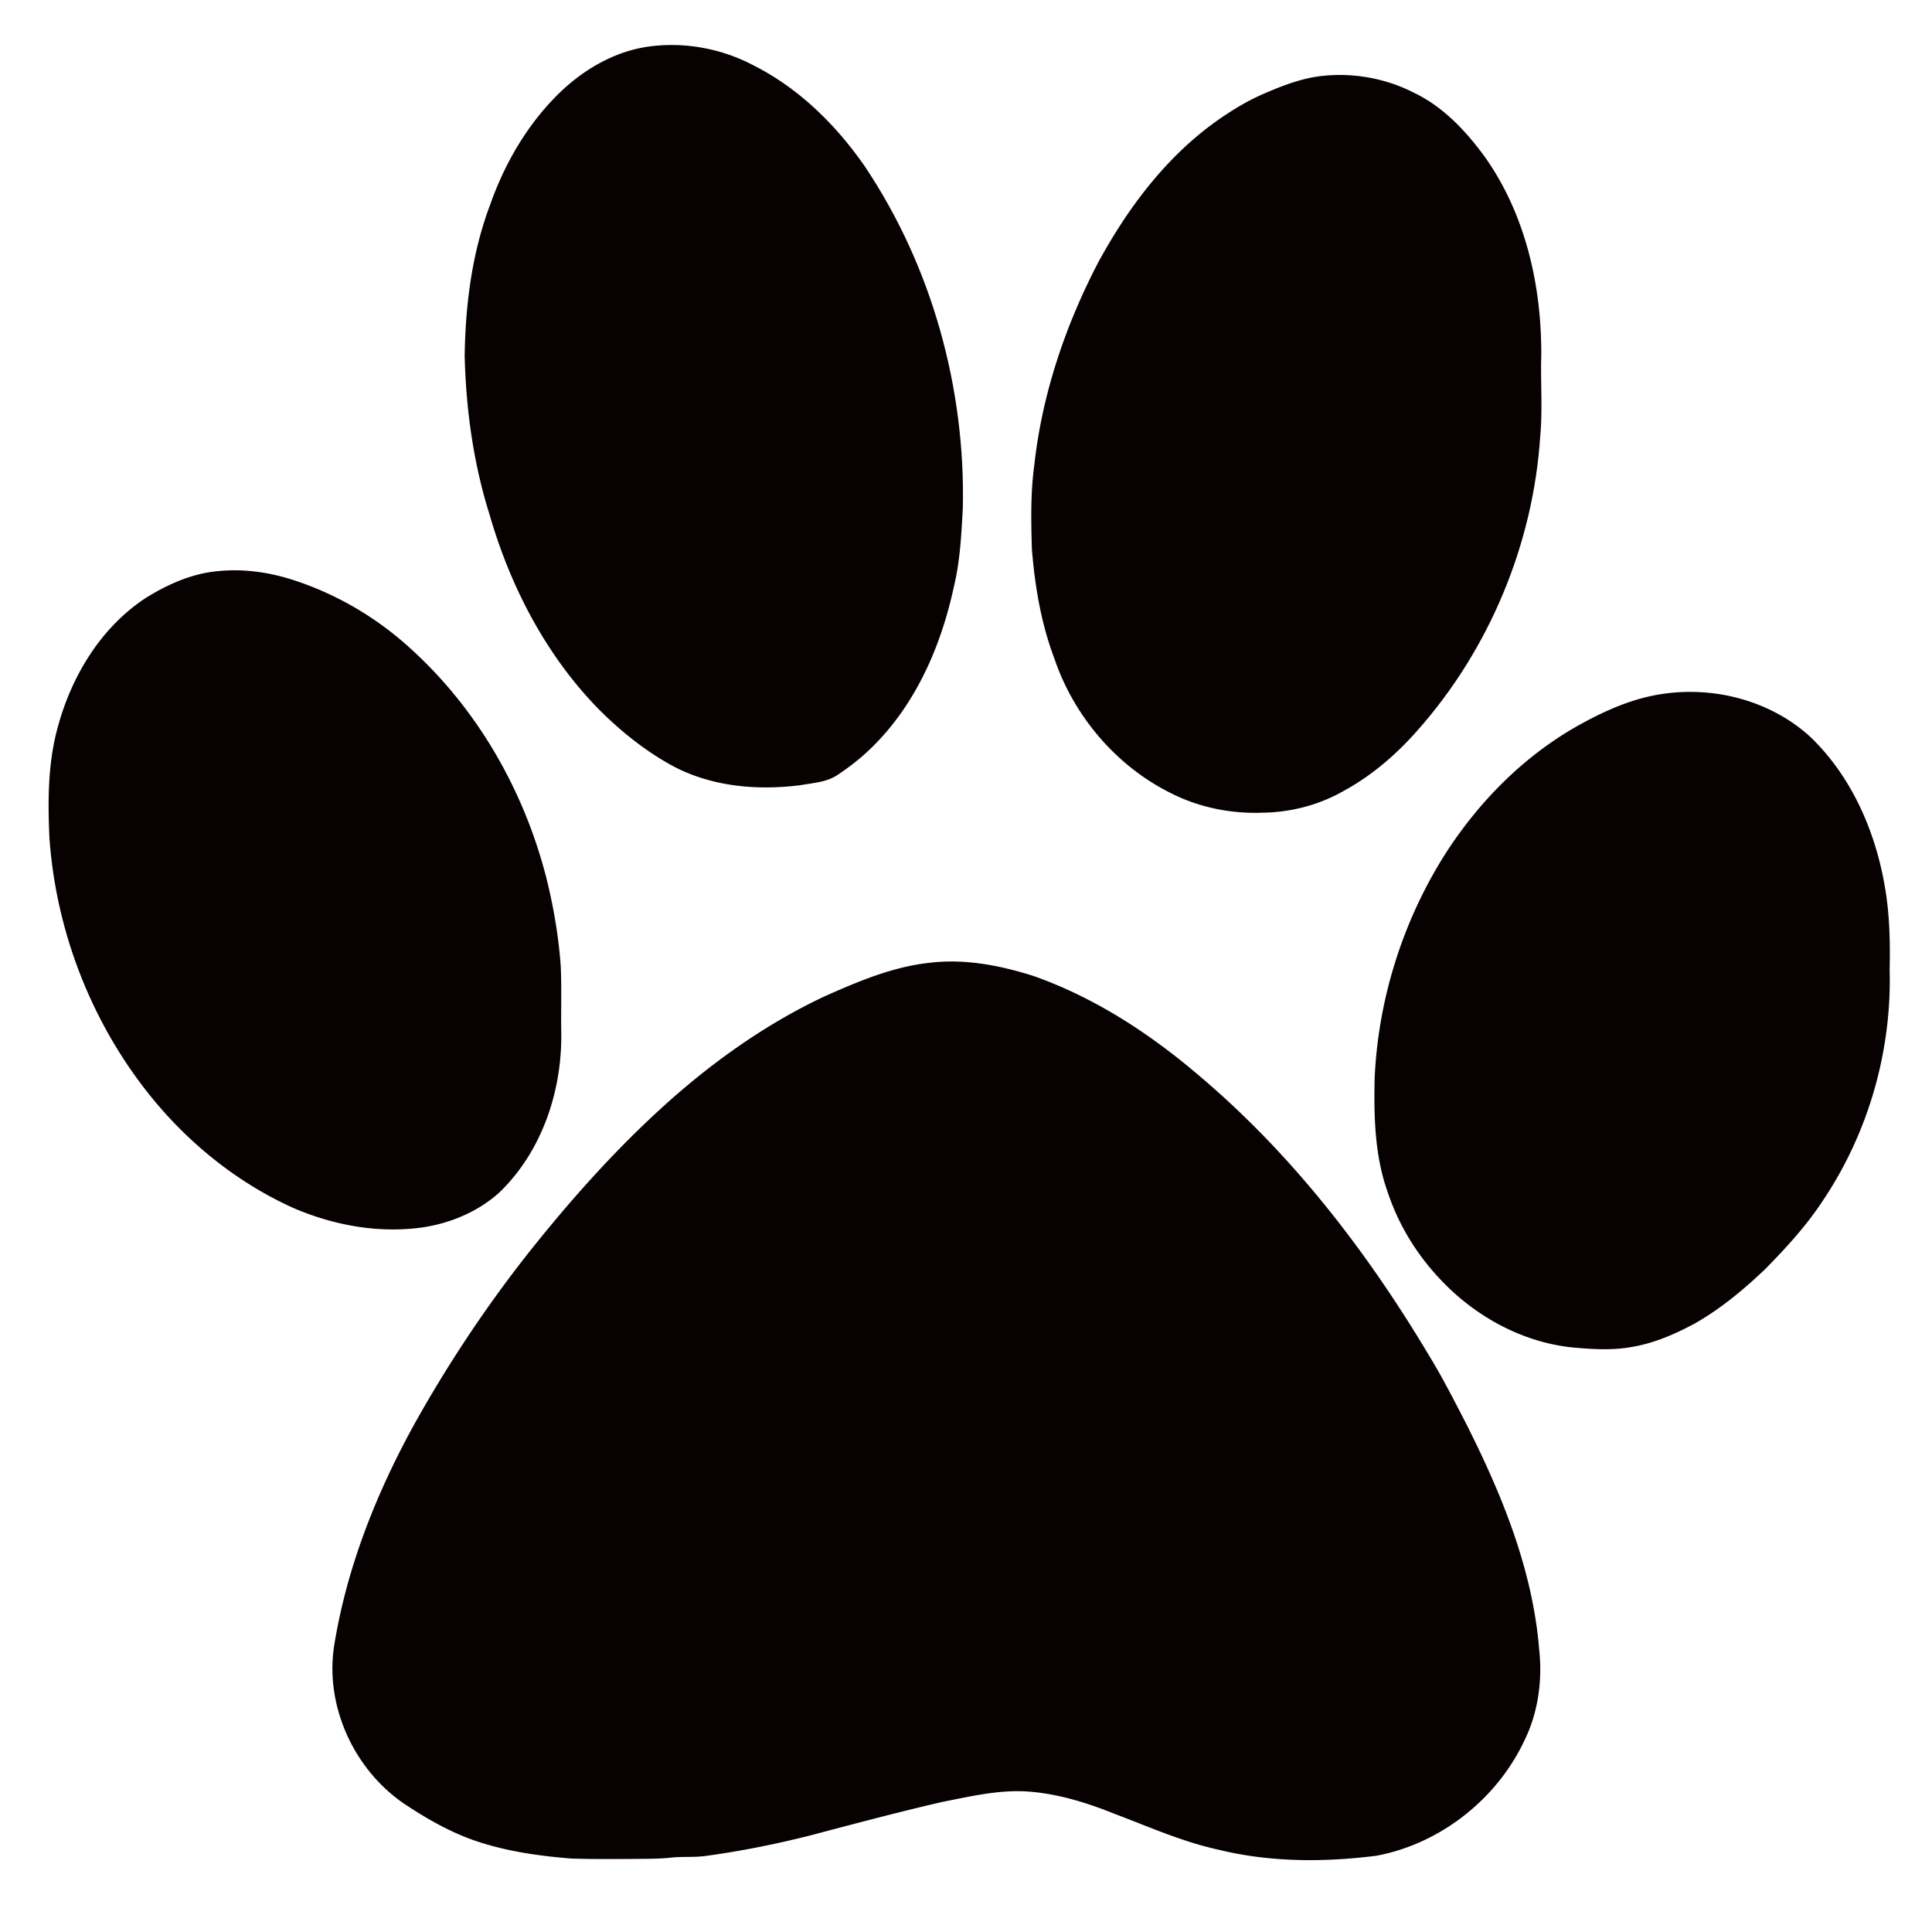 Paw clipart #20, Download drawings